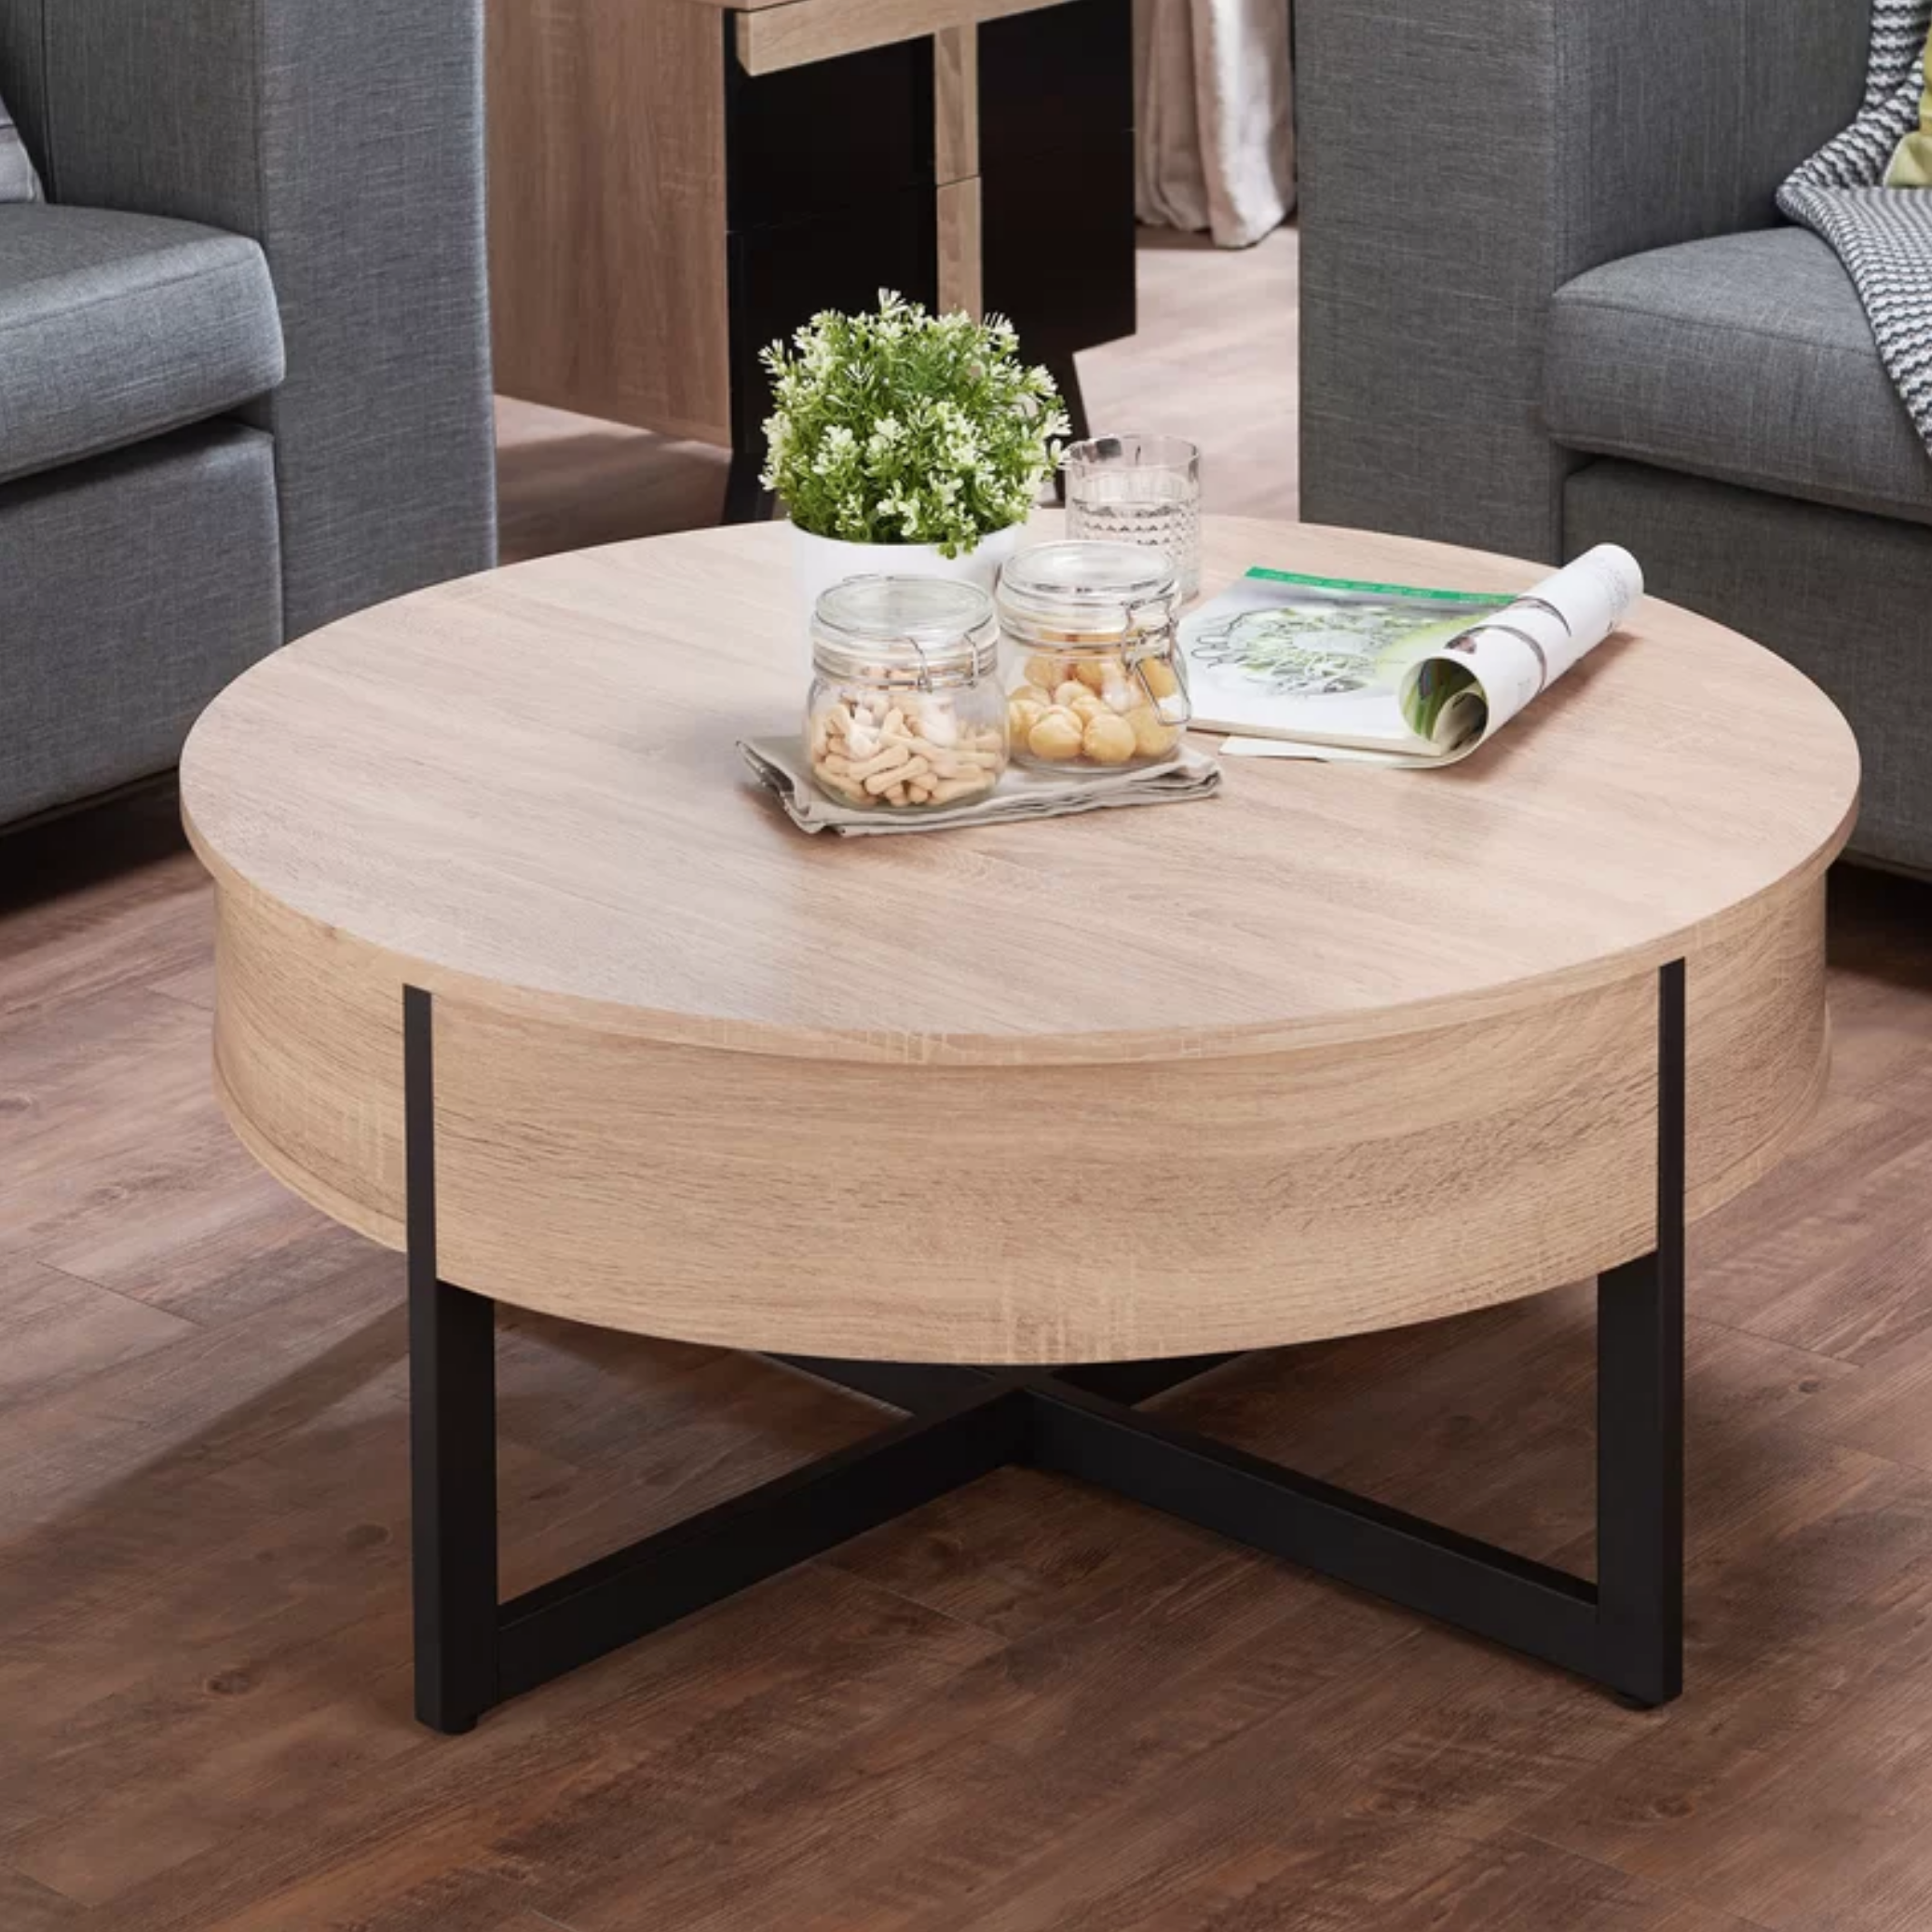 Charles Coffee Table with Storage | Round wood coffee ...